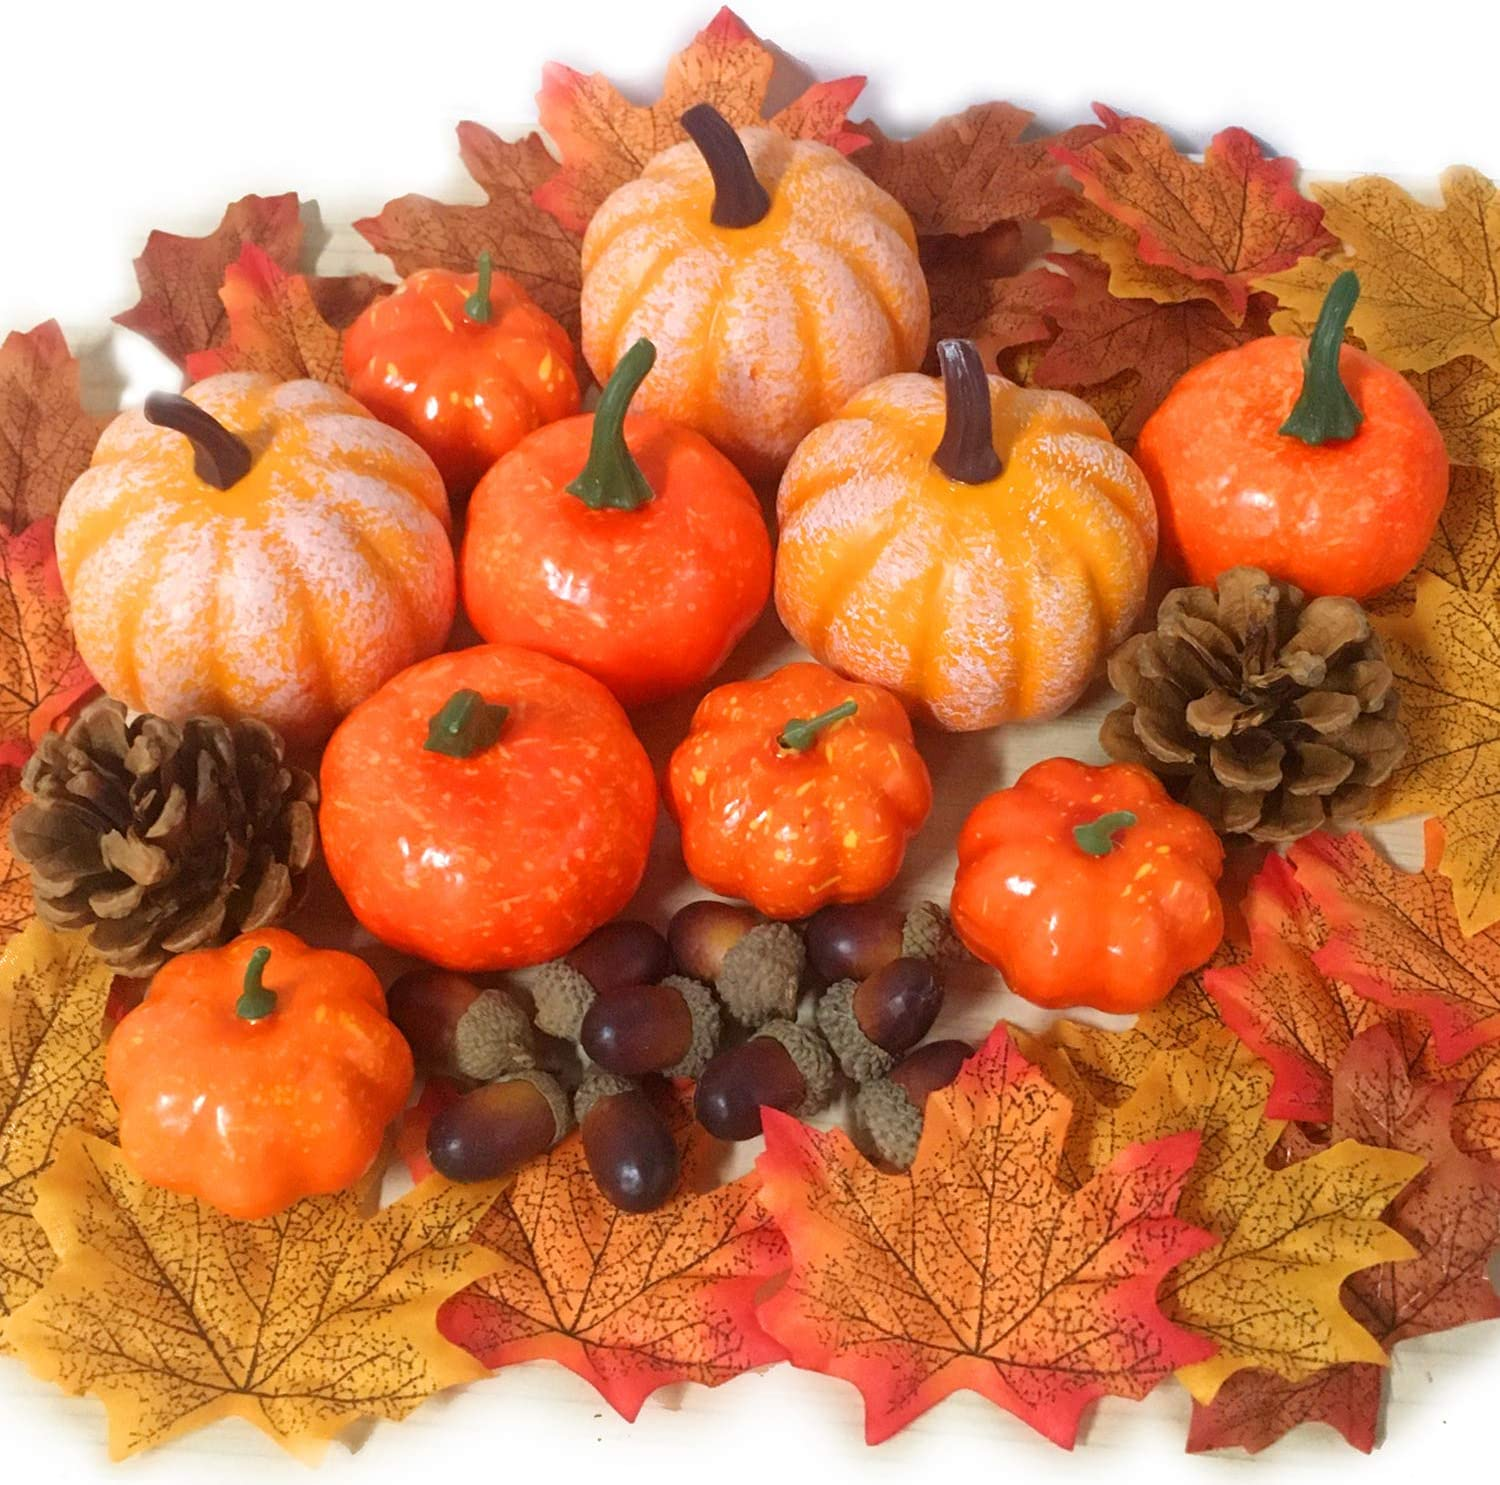 52 PCS Thanksgiving Artificial Pumpkins Home Decoration Set, Pine Cones, Acorns, Maple Leave Fall Wedding Party Table Fireplace Harvest Decor, Artificial Vegetables for Autumn Thanksgiving Home Décor